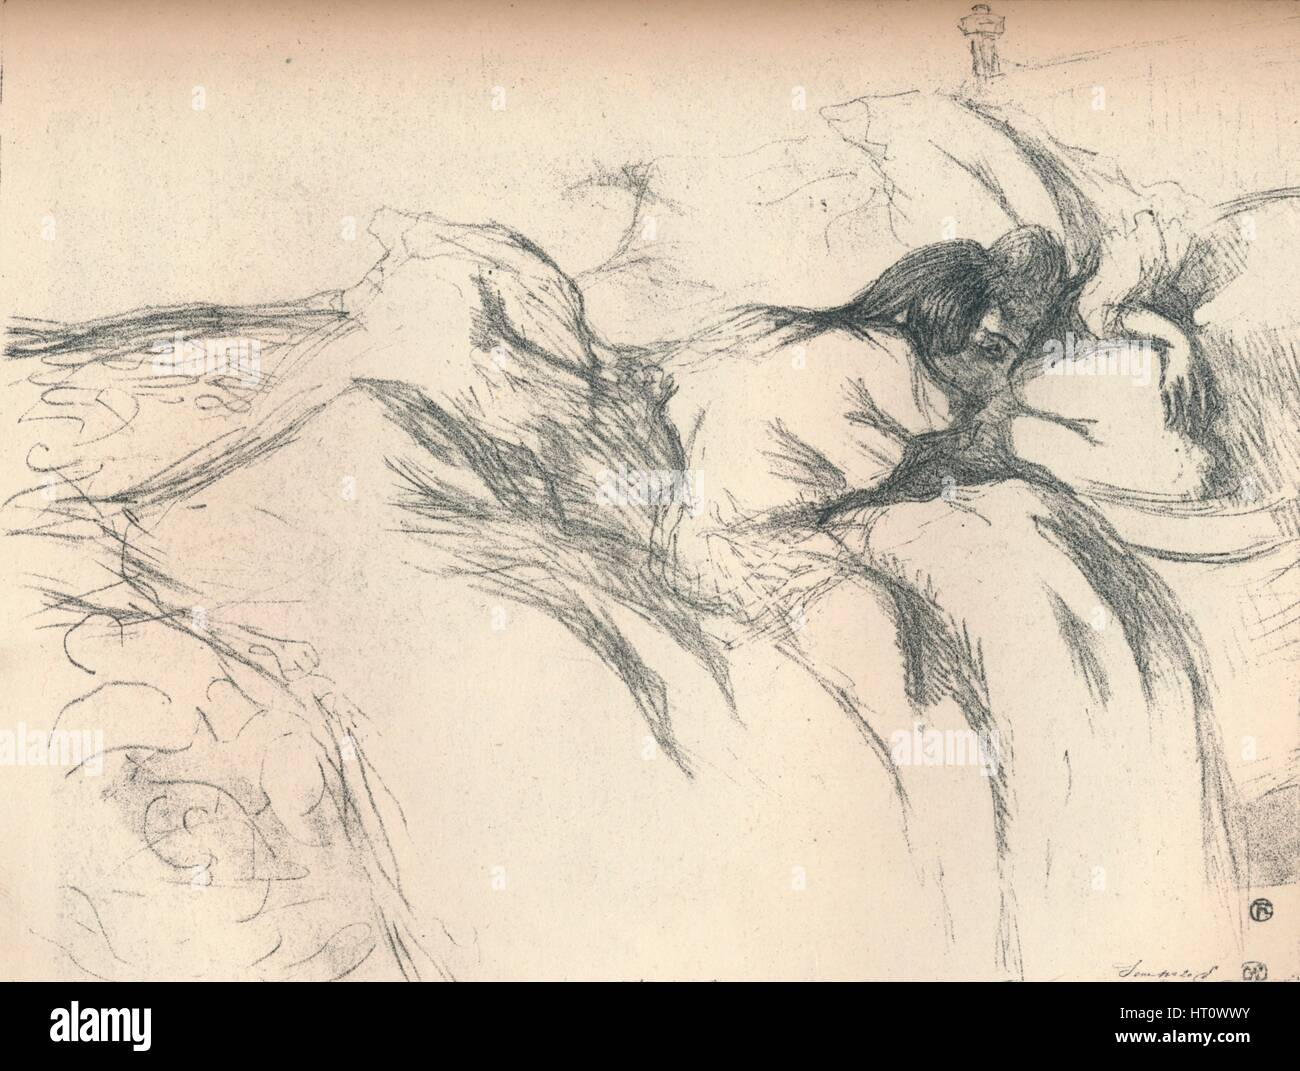 Woman Waking Up In Bed 1896 Artist Henri De Toulouse Lautrec Stock Photo Alamy